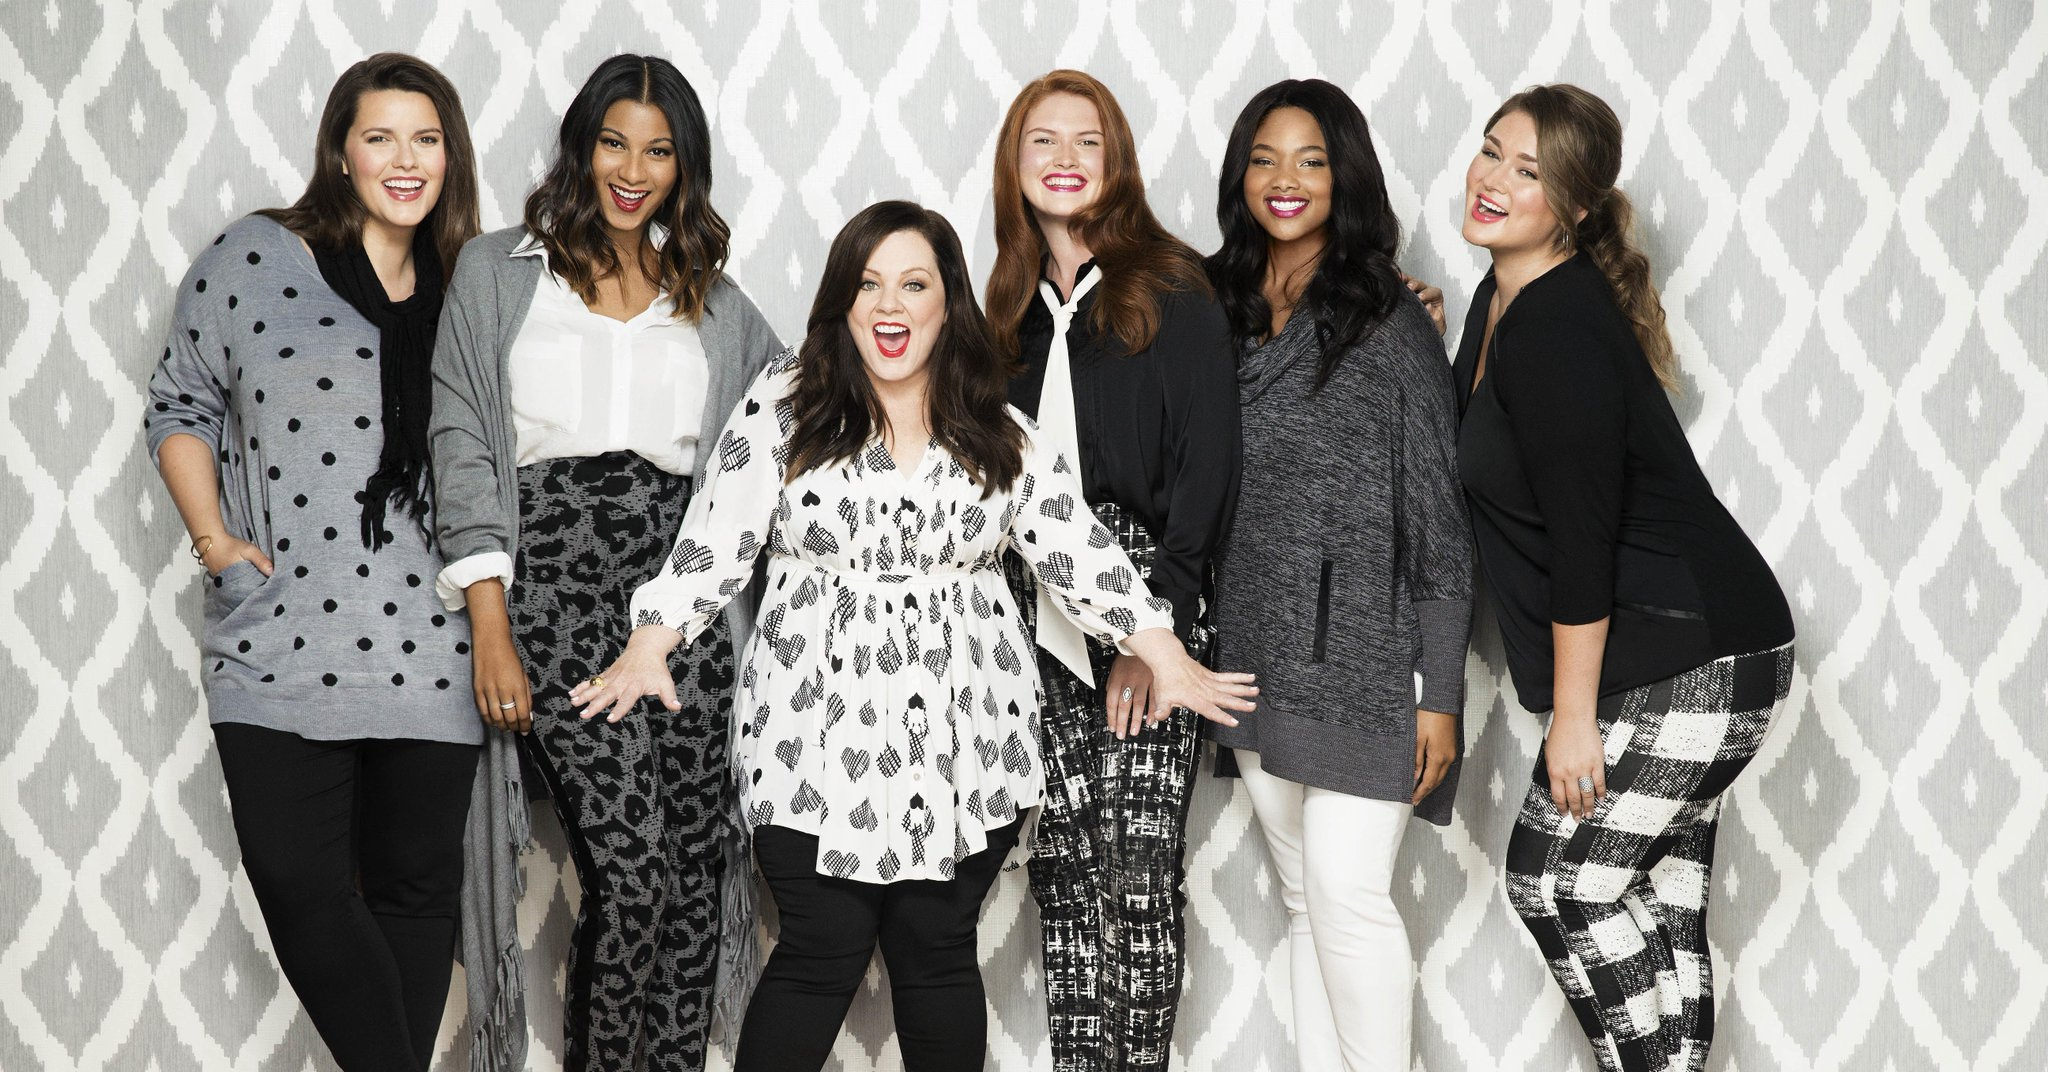 You're going to want everything from @melissamccarthy's clothing line: http://t.co/VfjGXlkrzr http://t.co/VBwGpIwSdp